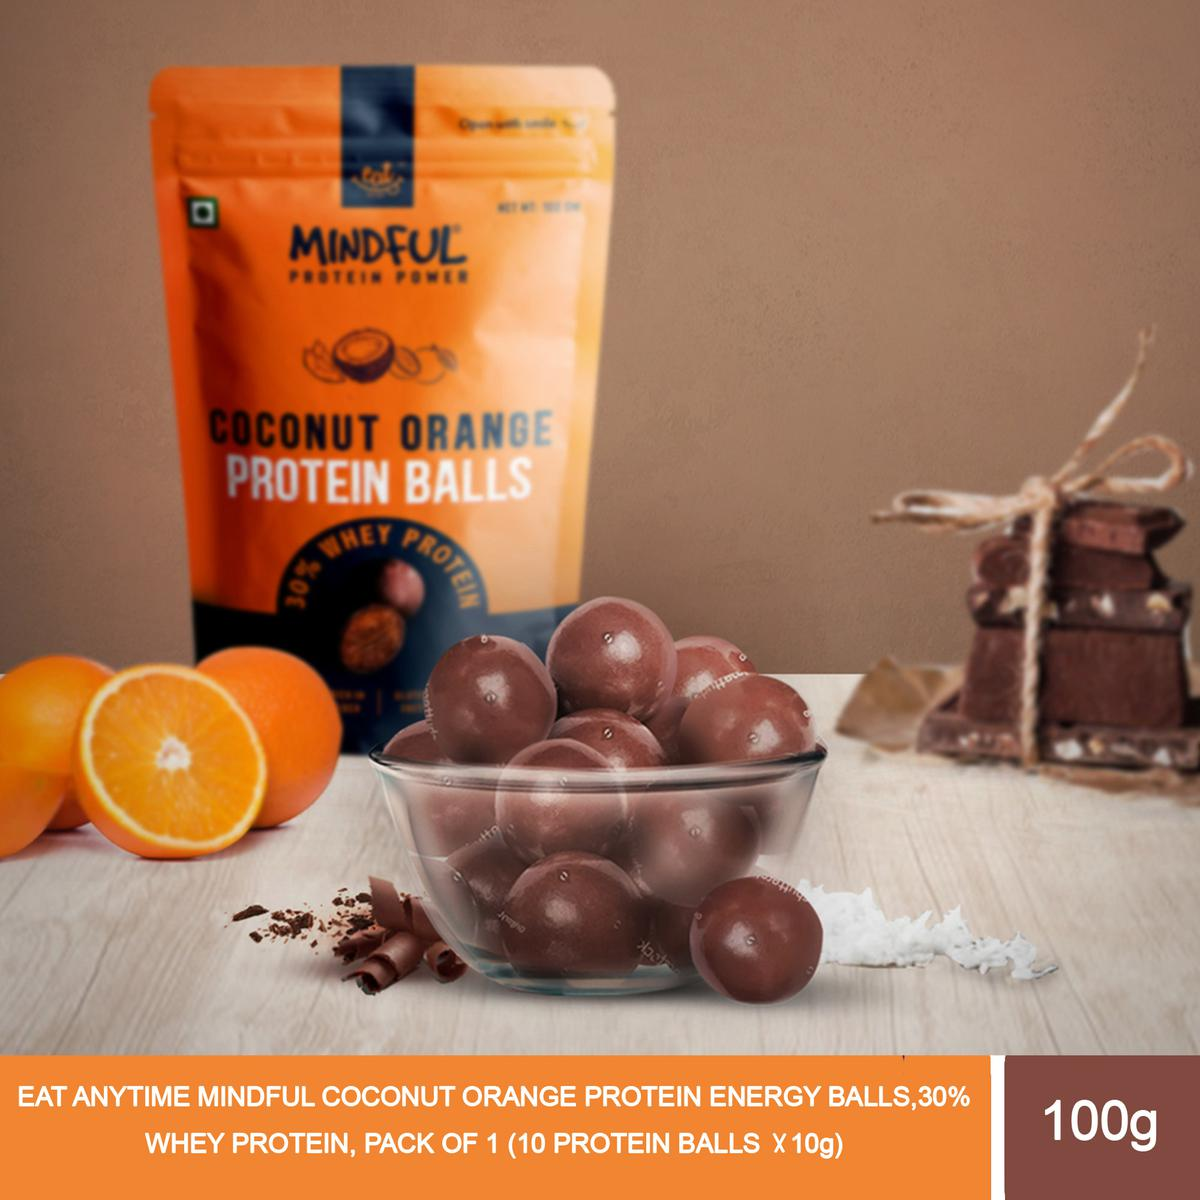 EAT Anytime Mindful Coconut Orange Protein Energy Balls, 30% Whey Protein, Pack Of 1 - 100G (10 Protein Balls X 10G)